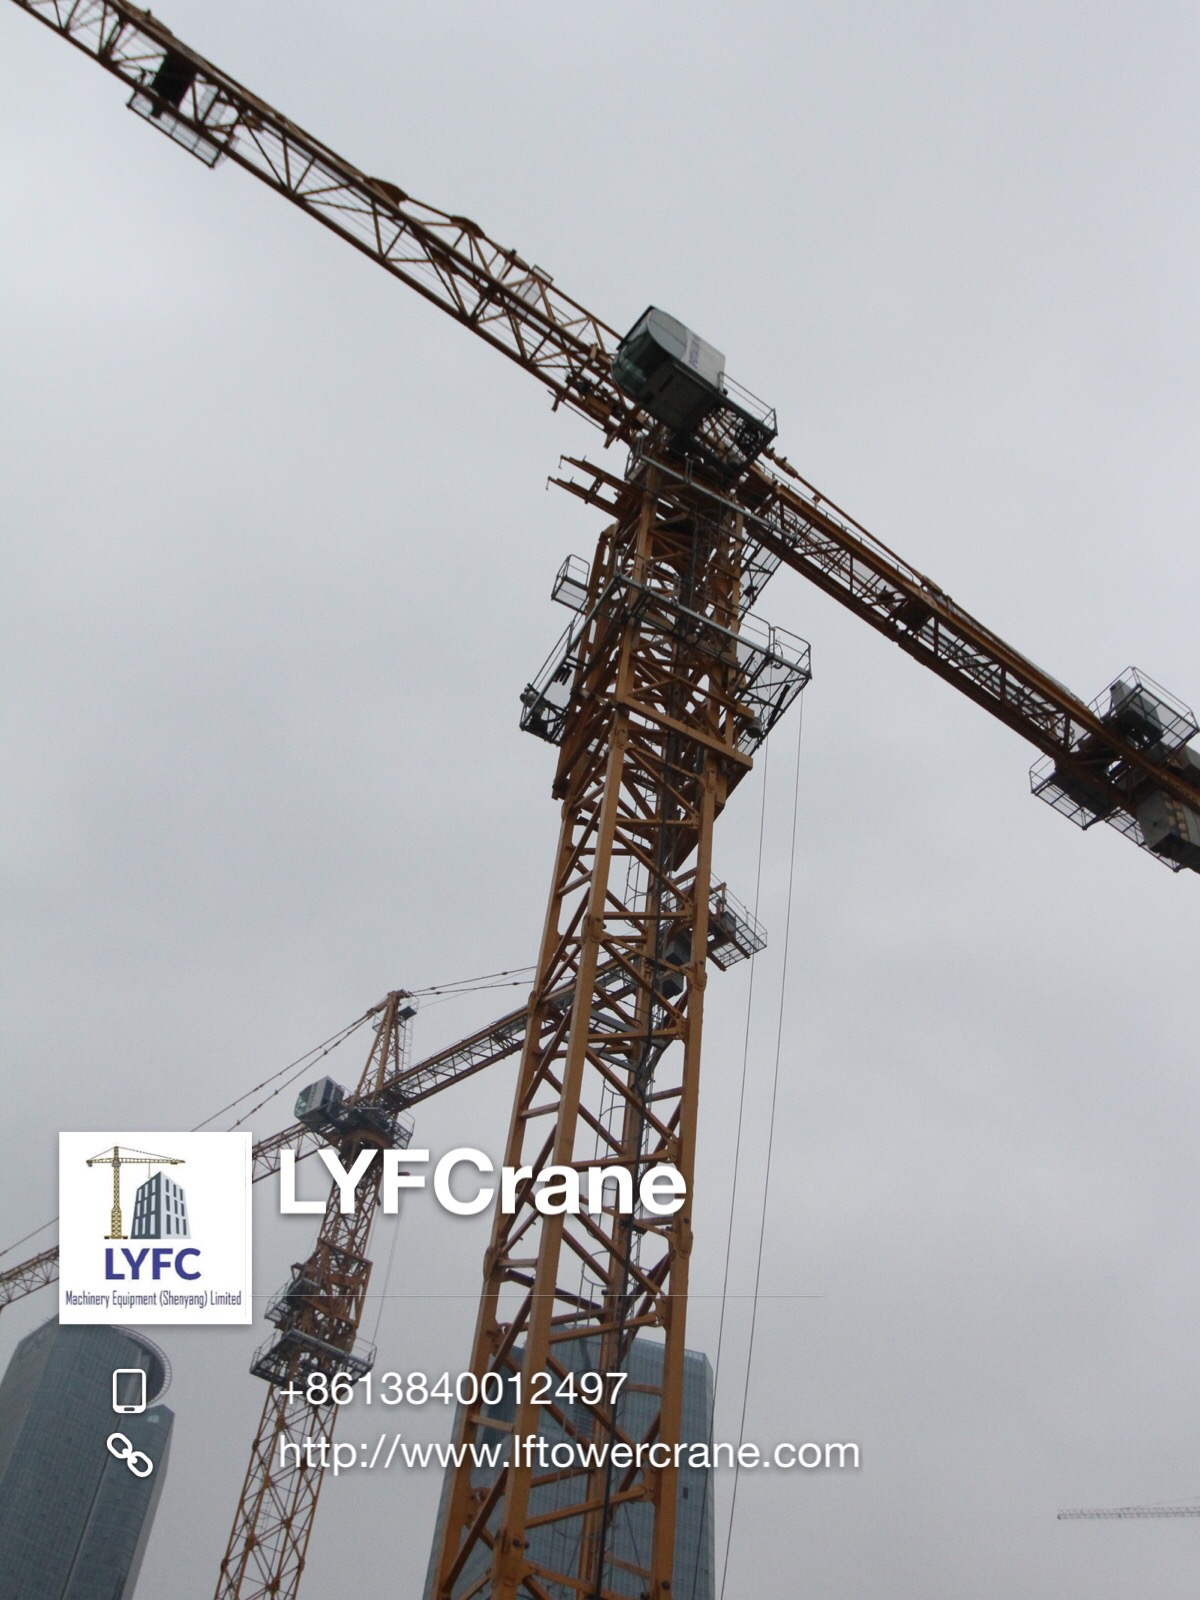 TOPKIT TOWER CRANE MC480-25T JIB LENGTH 81.6M 2020 NEW PRODUCTS HOT SALE MADE IN CHINA